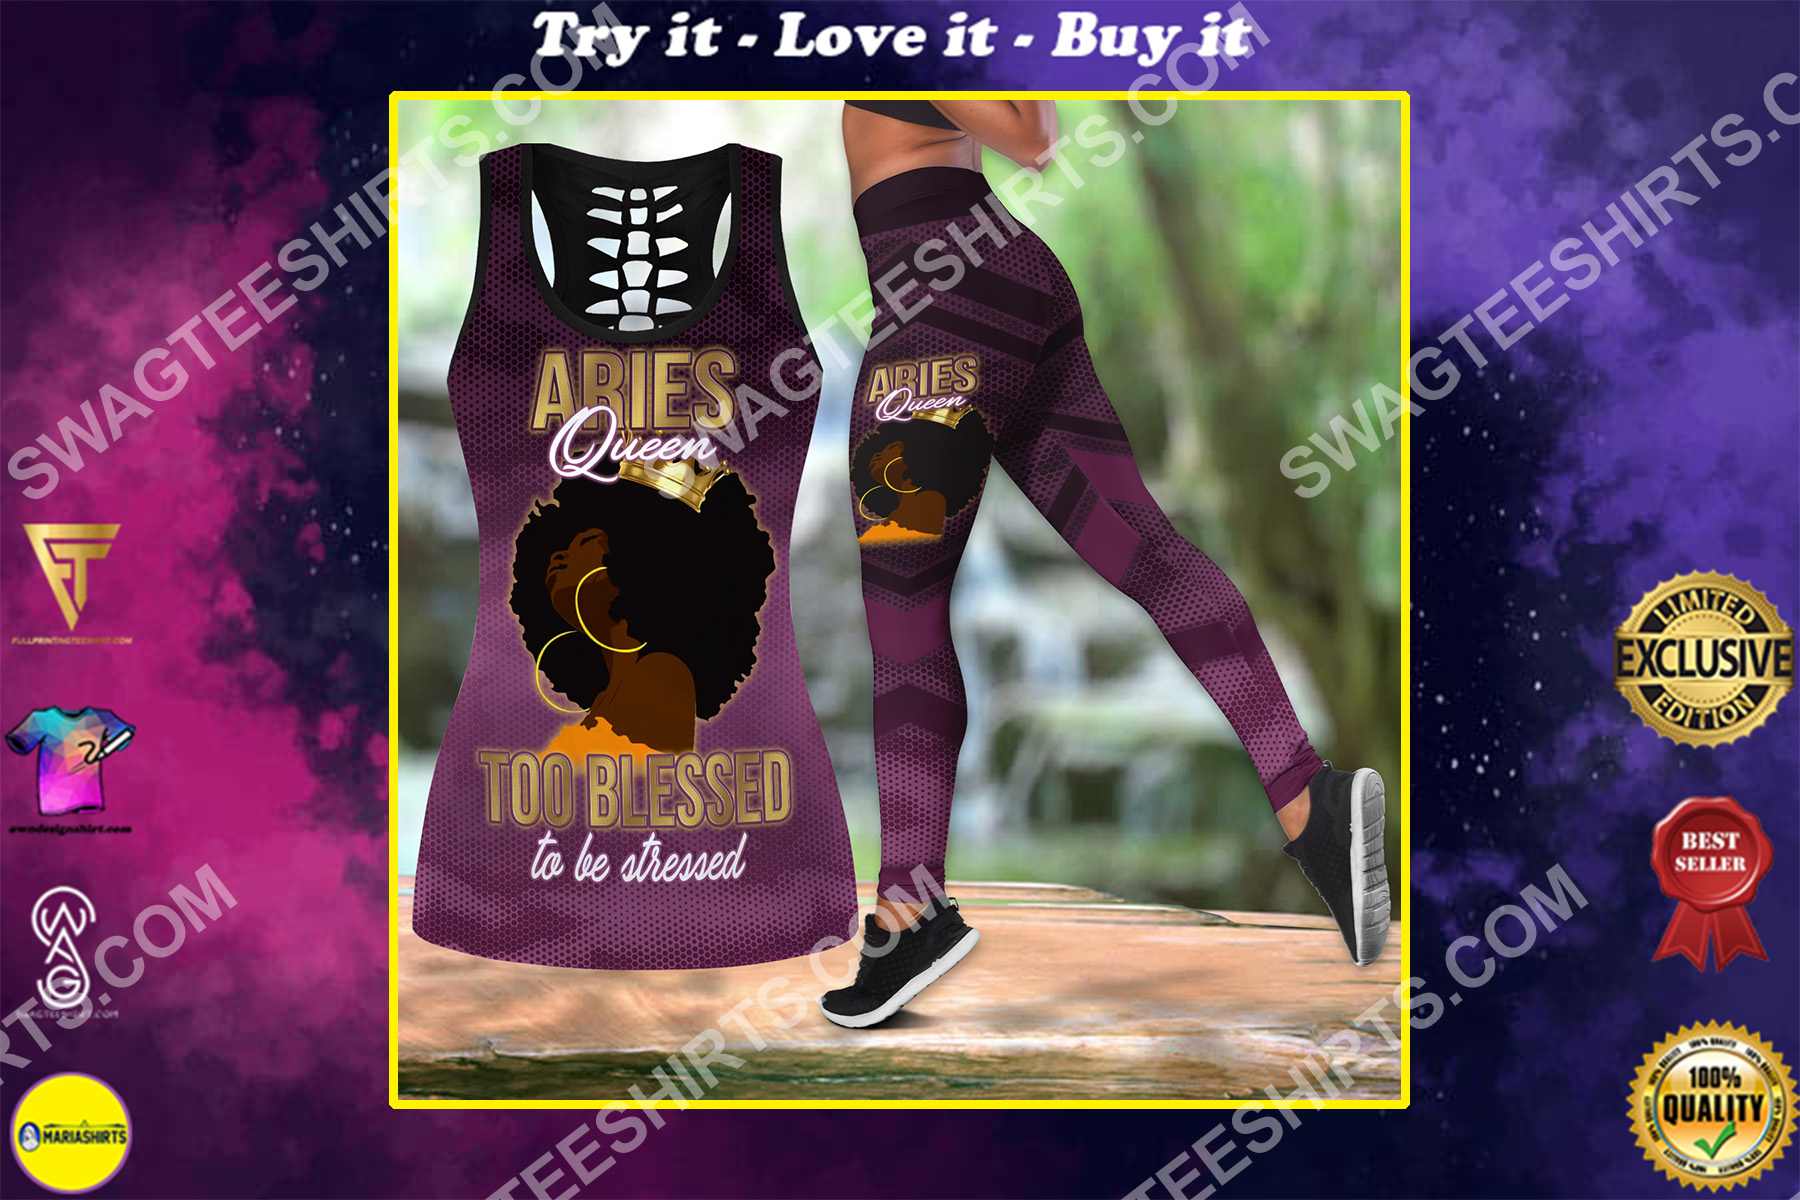 aries queen too blessed to be stressed birthday gift set sports outfit